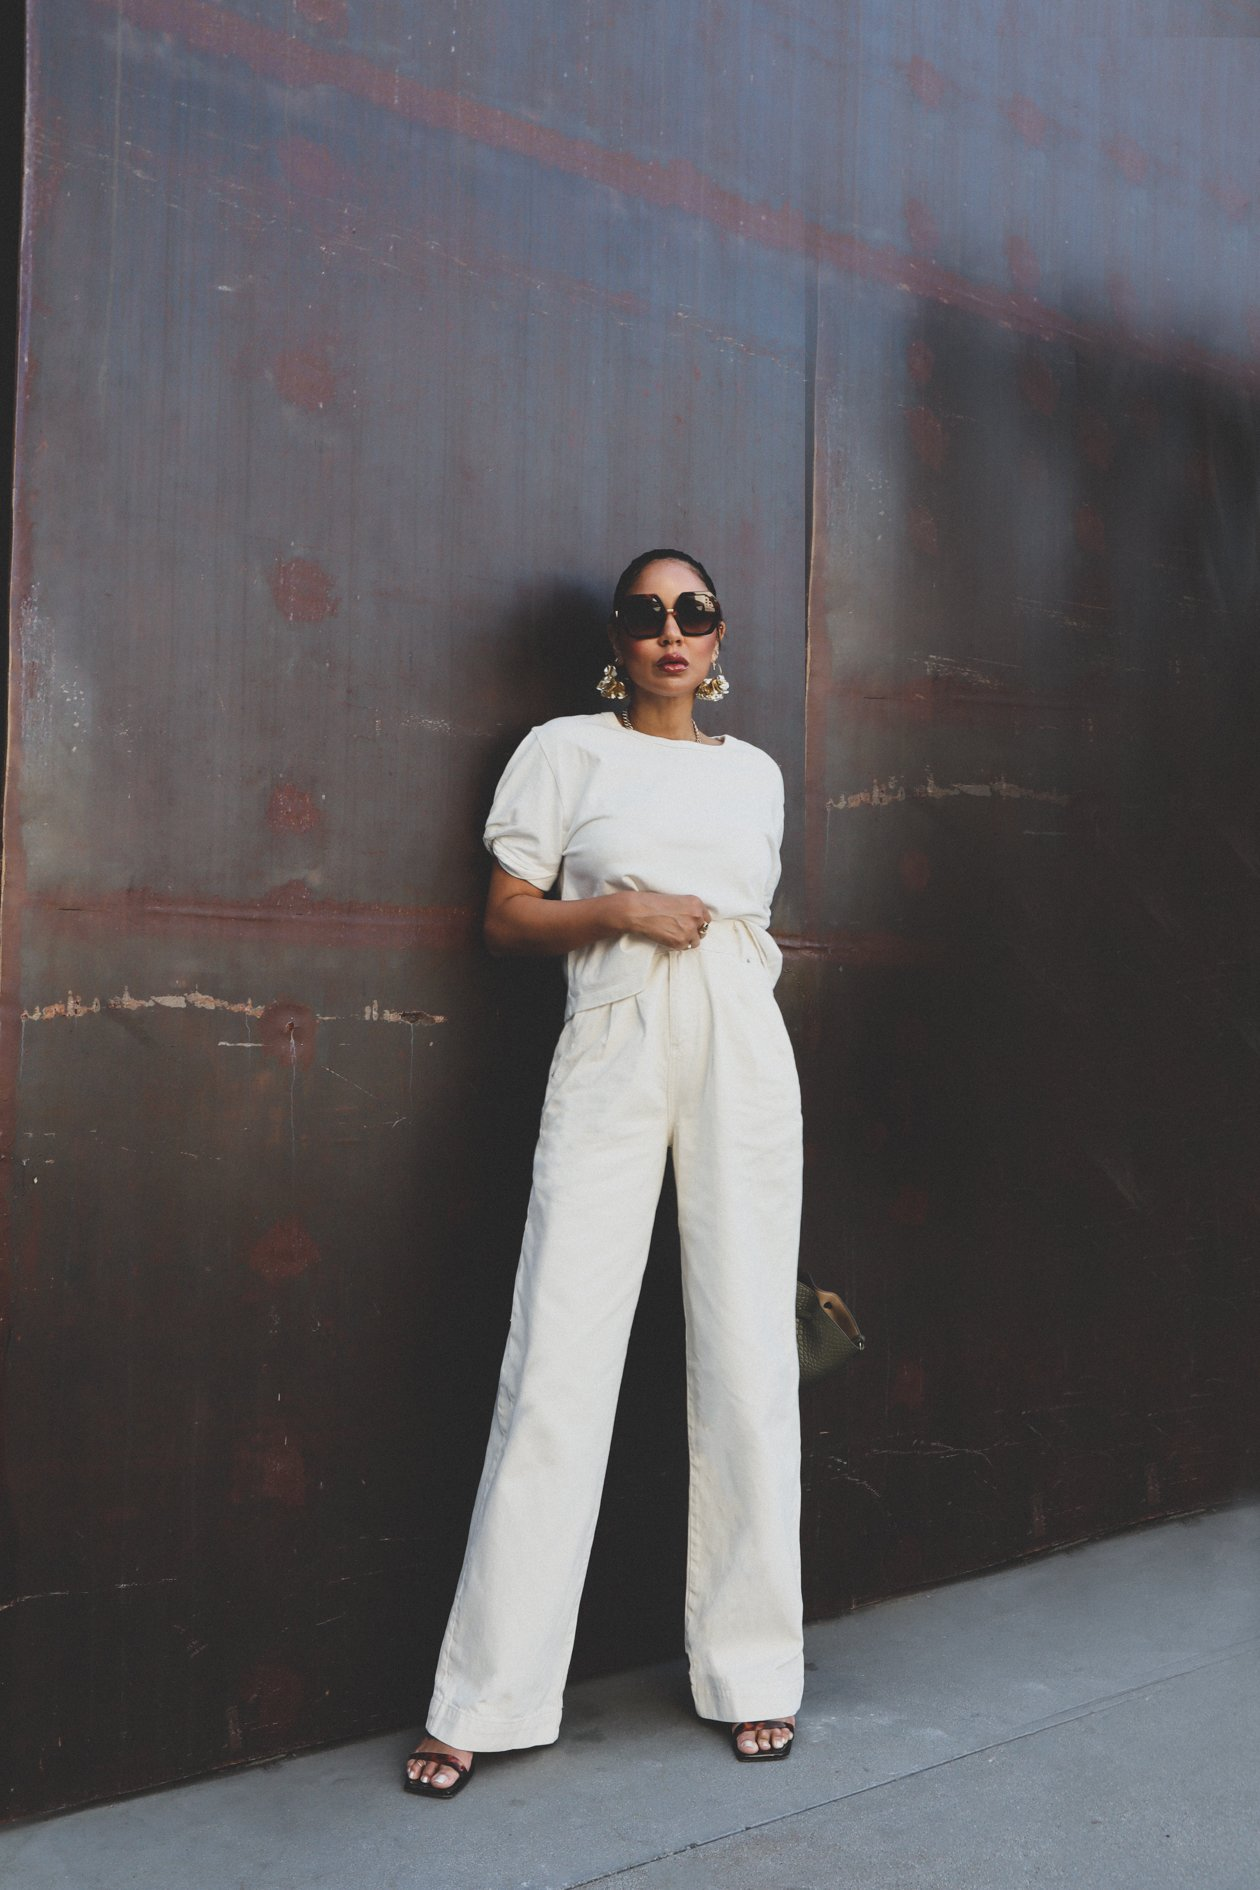 How to wear oversized pants for fall, Zara pants, Rebecca Minkoff top, Valentino sunglasses from Sunglass Hut